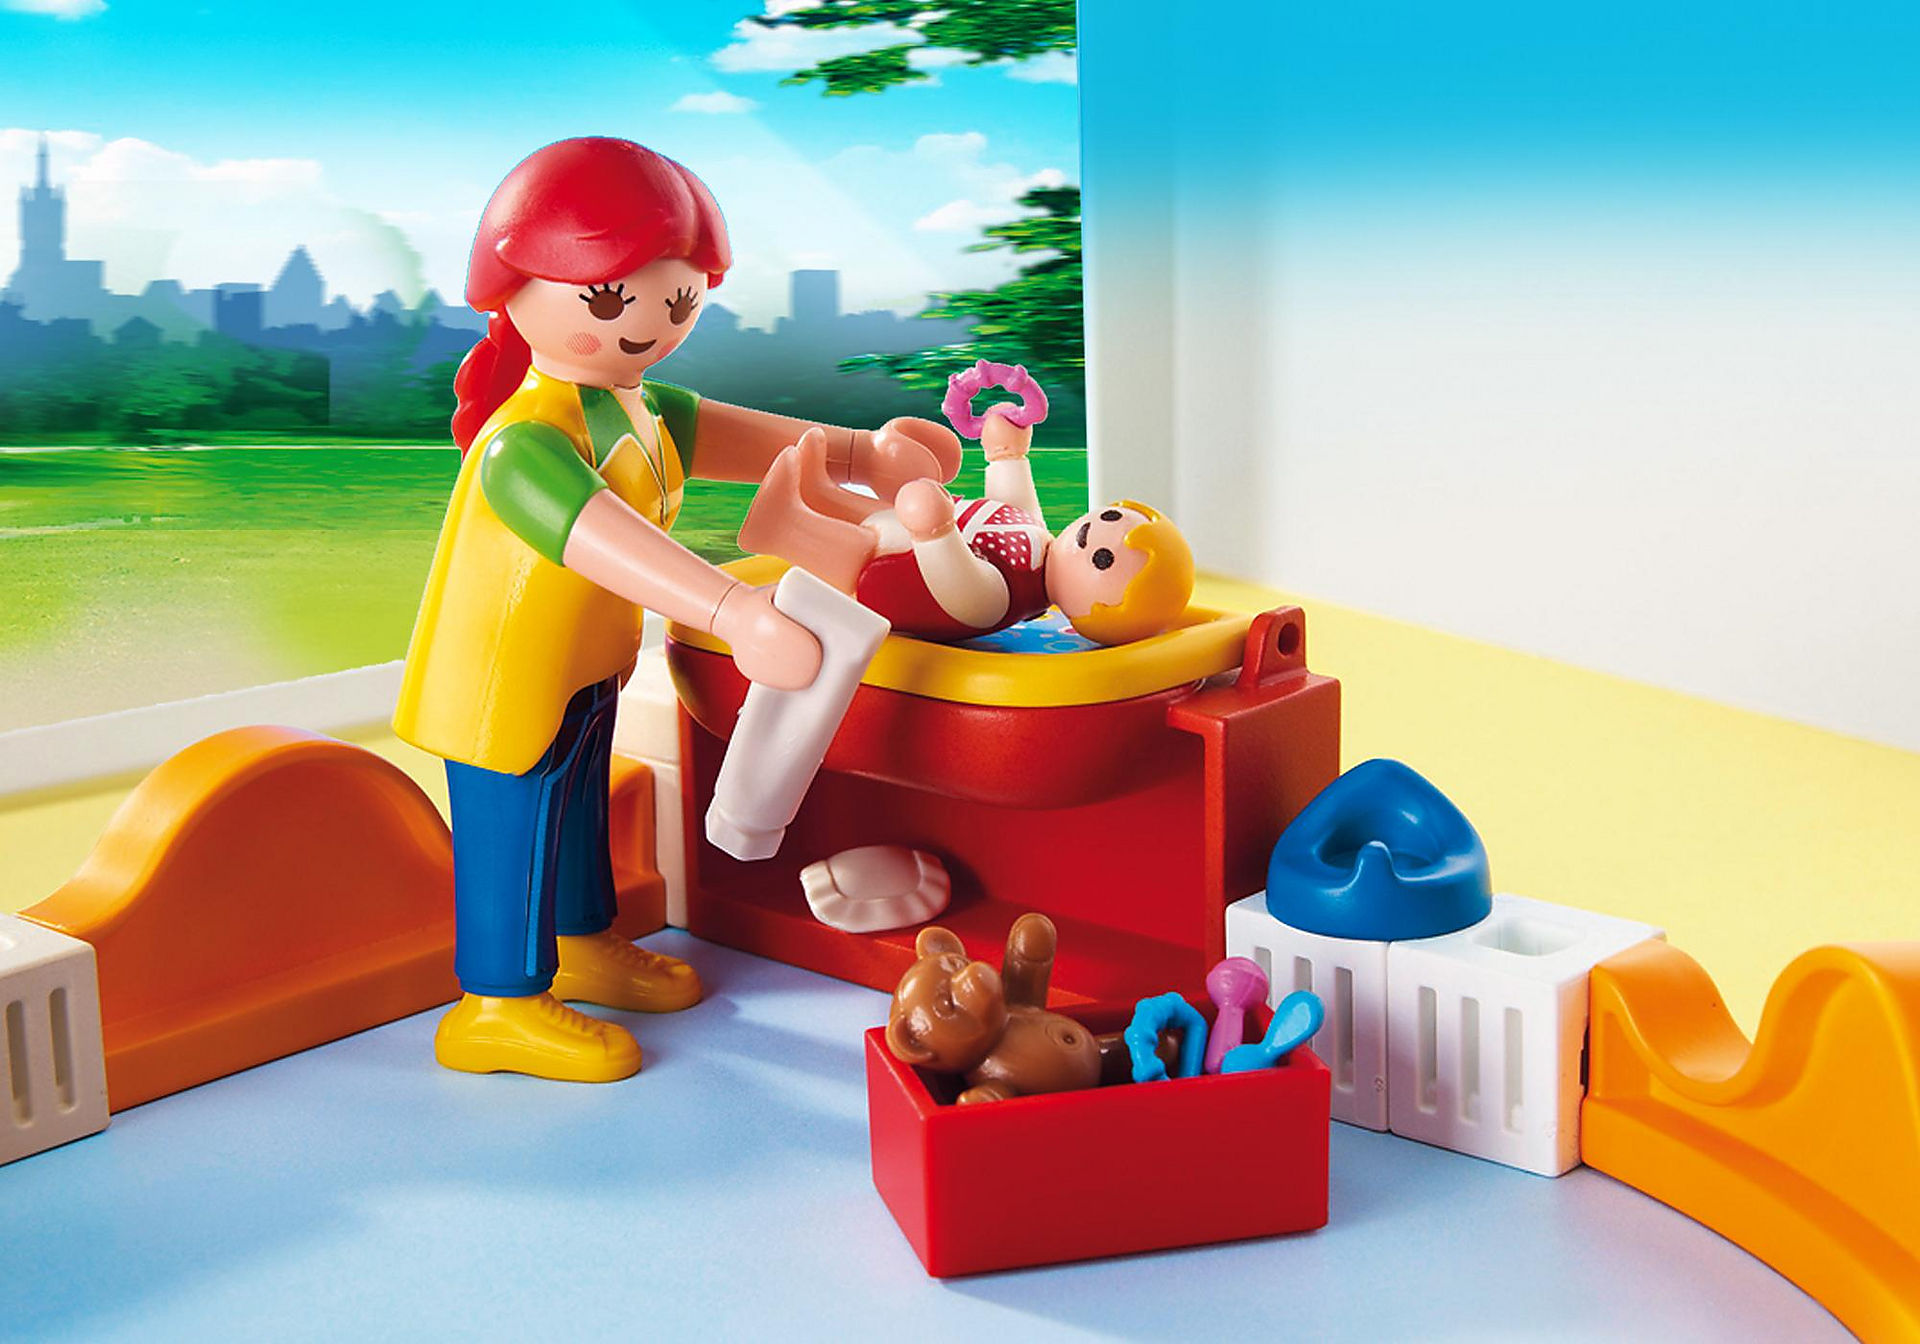 http://media.playmobil.com/i/playmobil/5570_product_extra1/Speelgroep